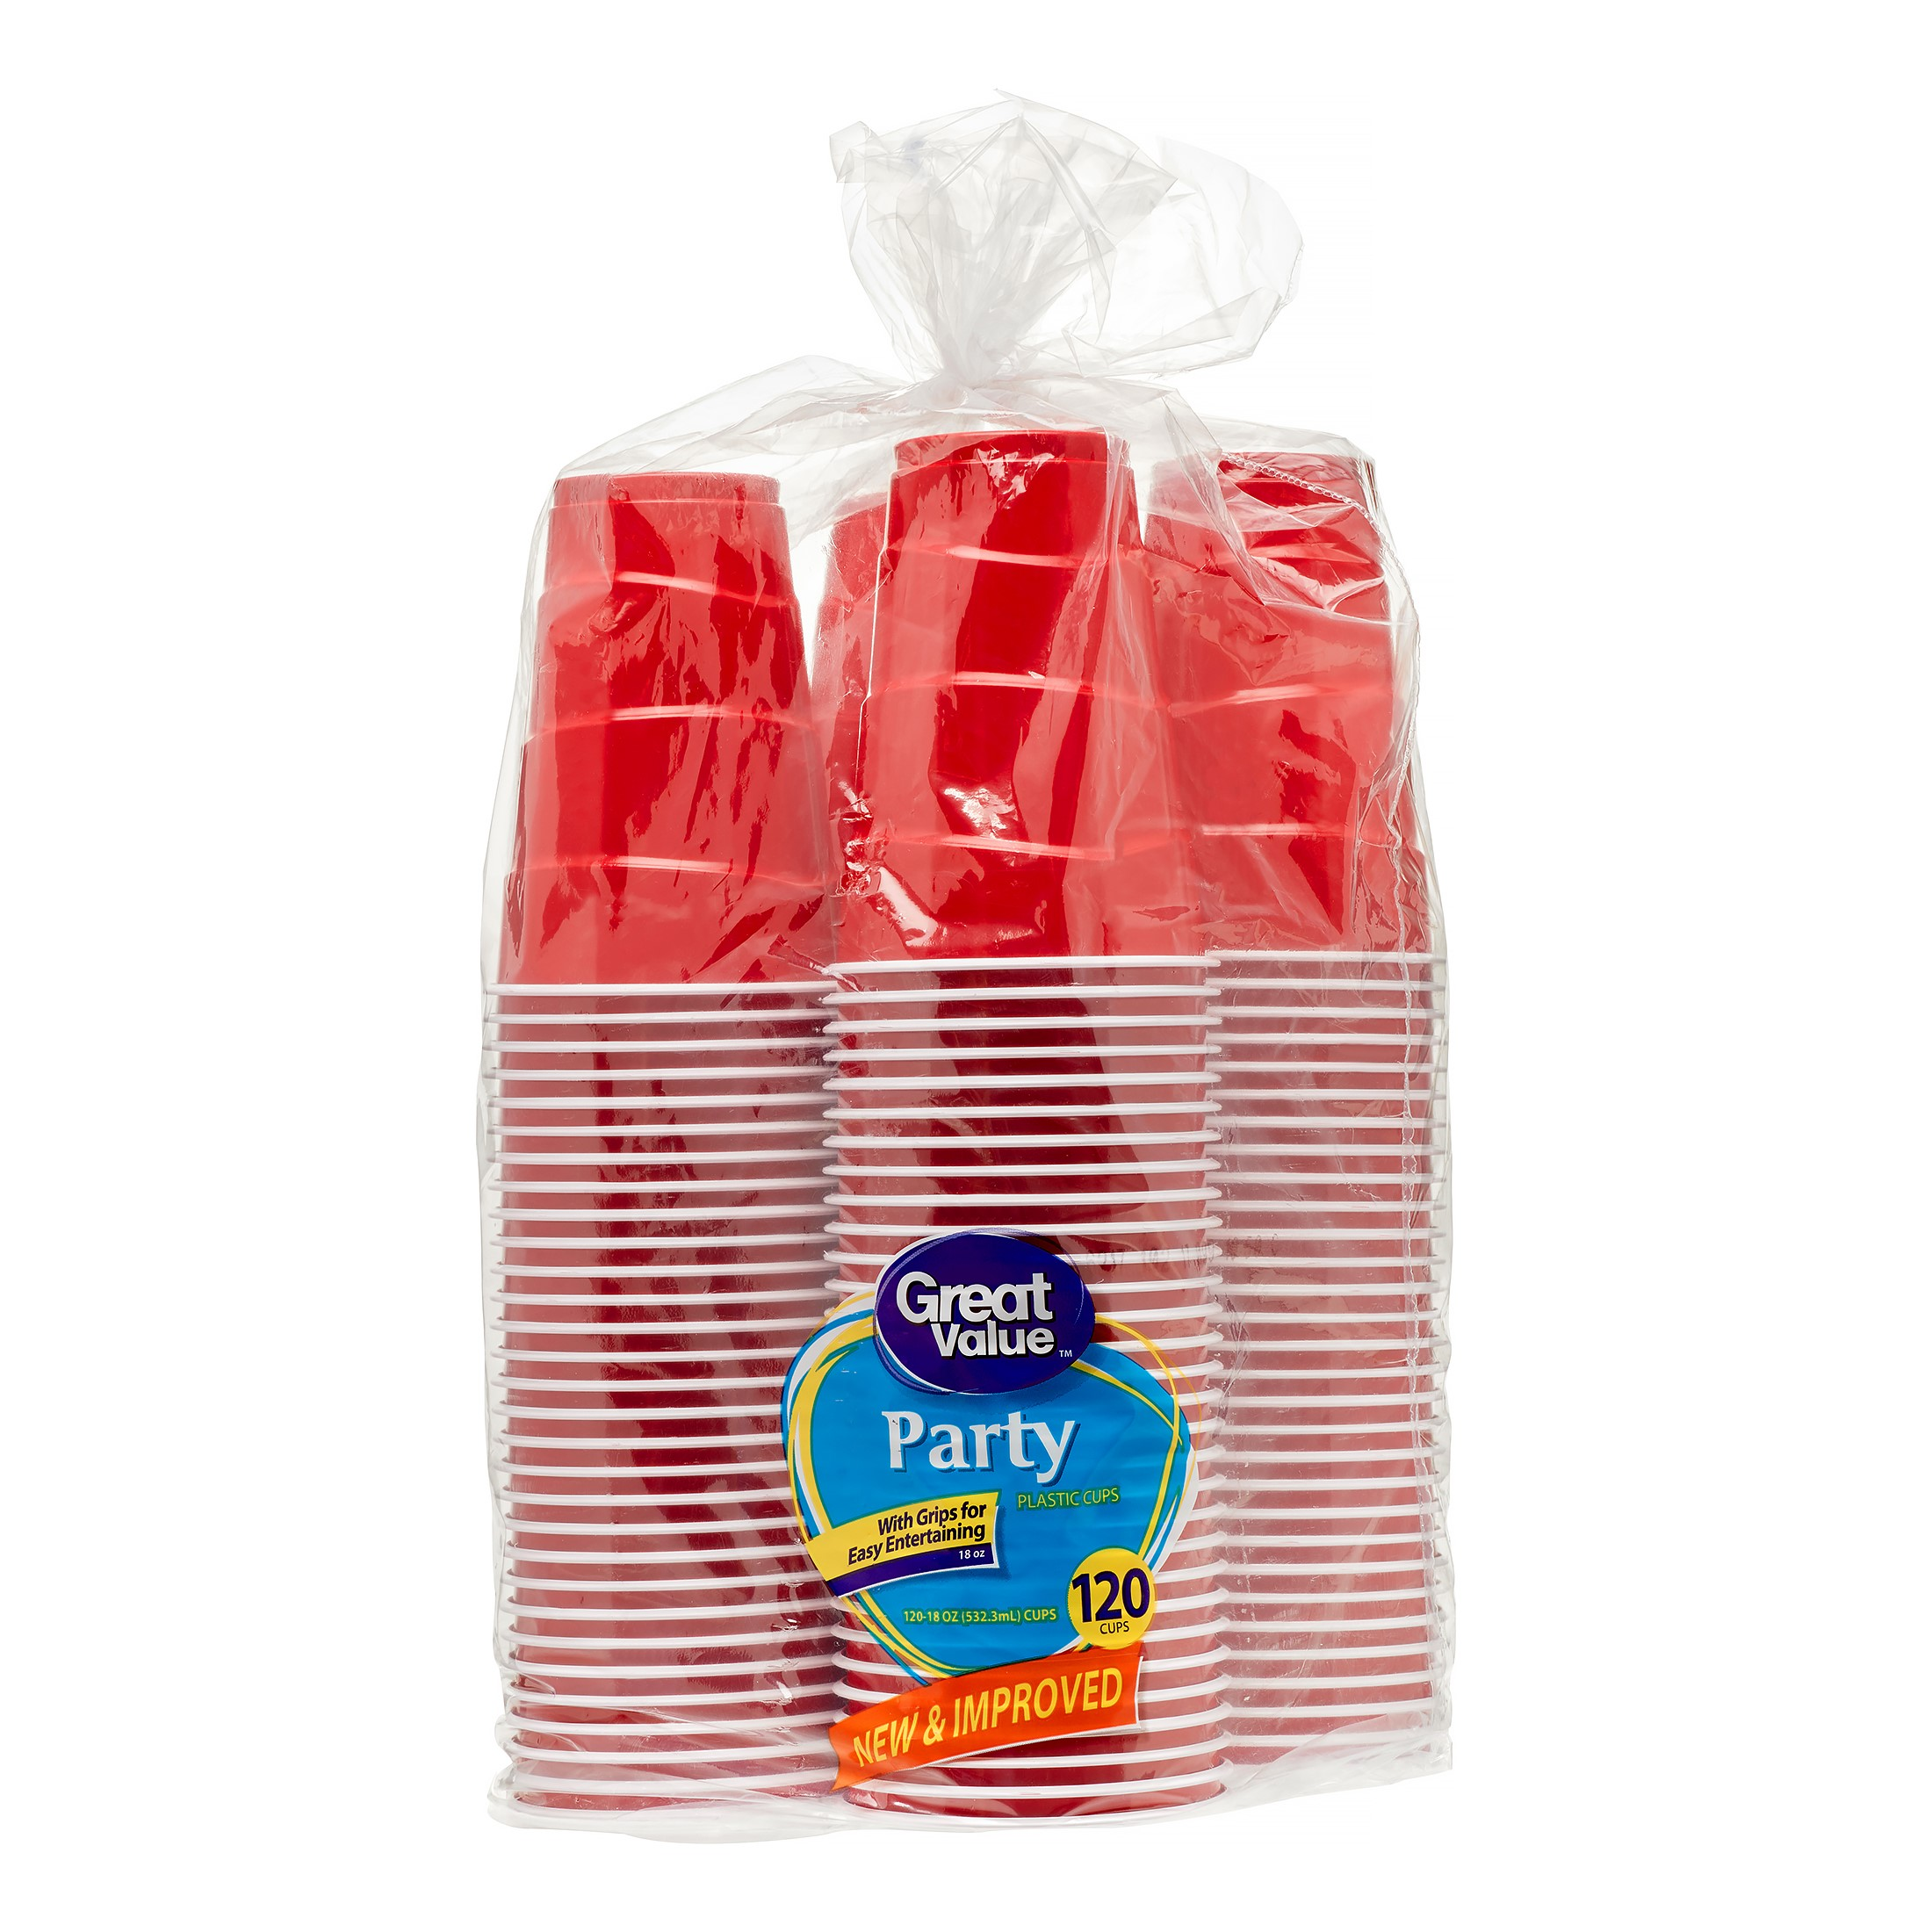 Great Value Party Cups, 18 oz, 120 Count